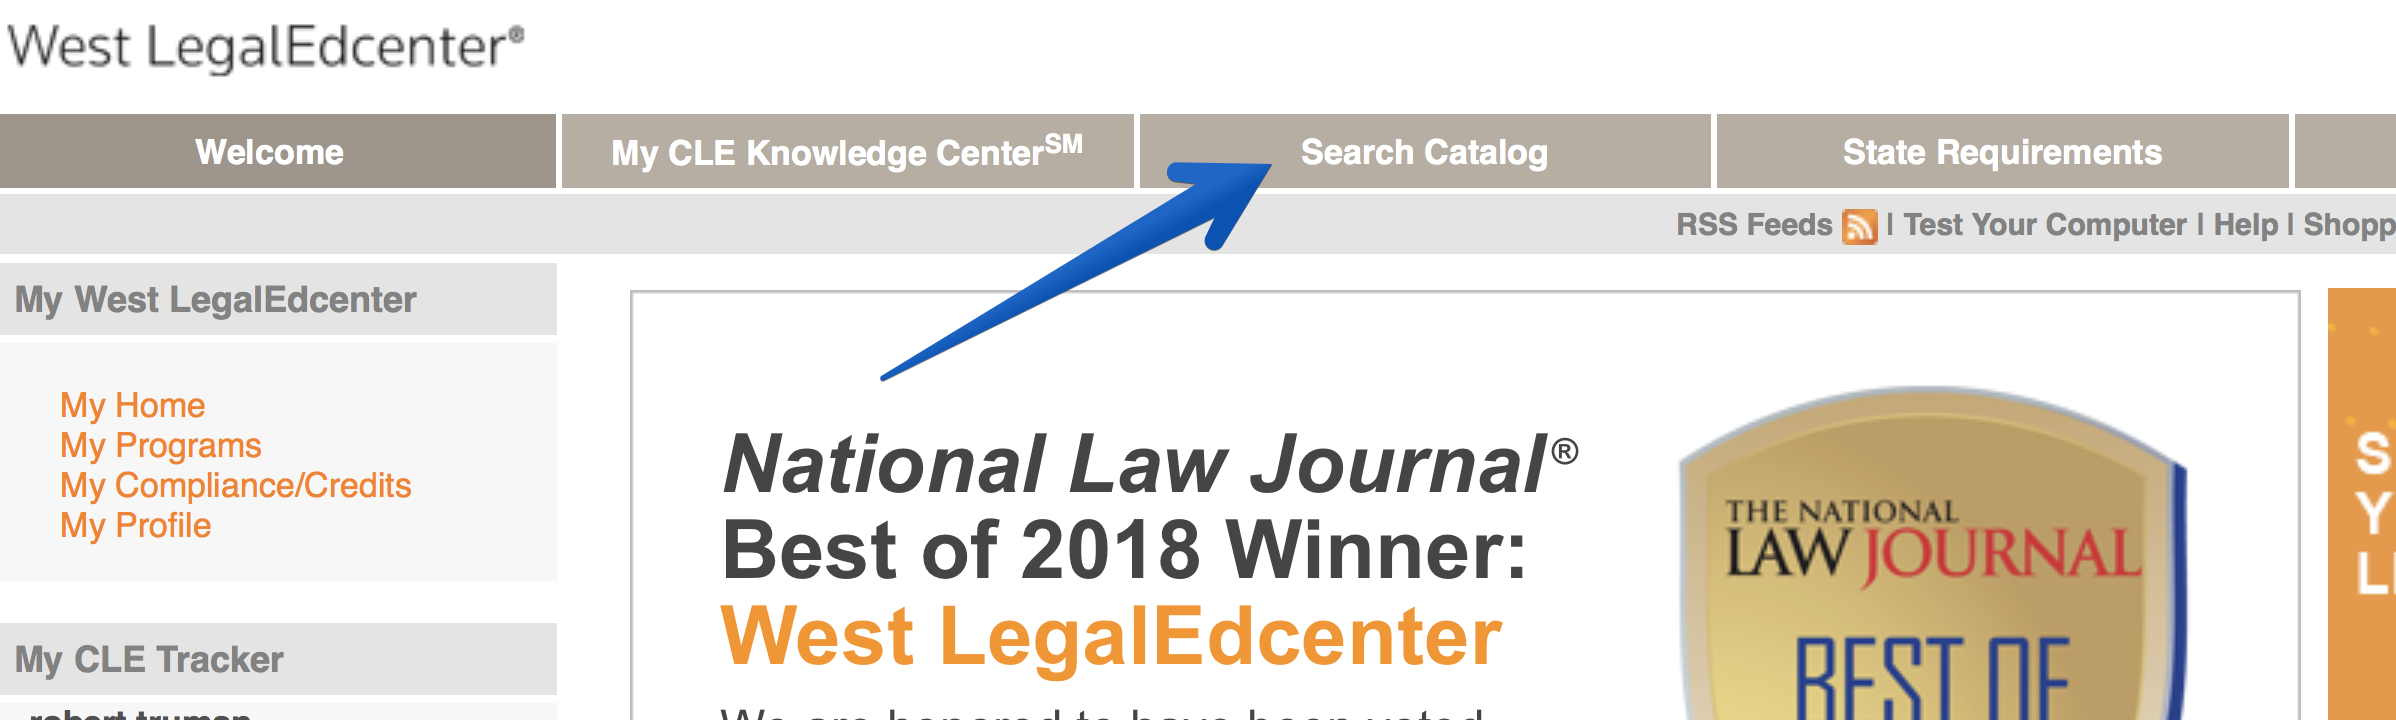 WestLegalEdcenter screenshot -- Click the 'Search Catalog' tab